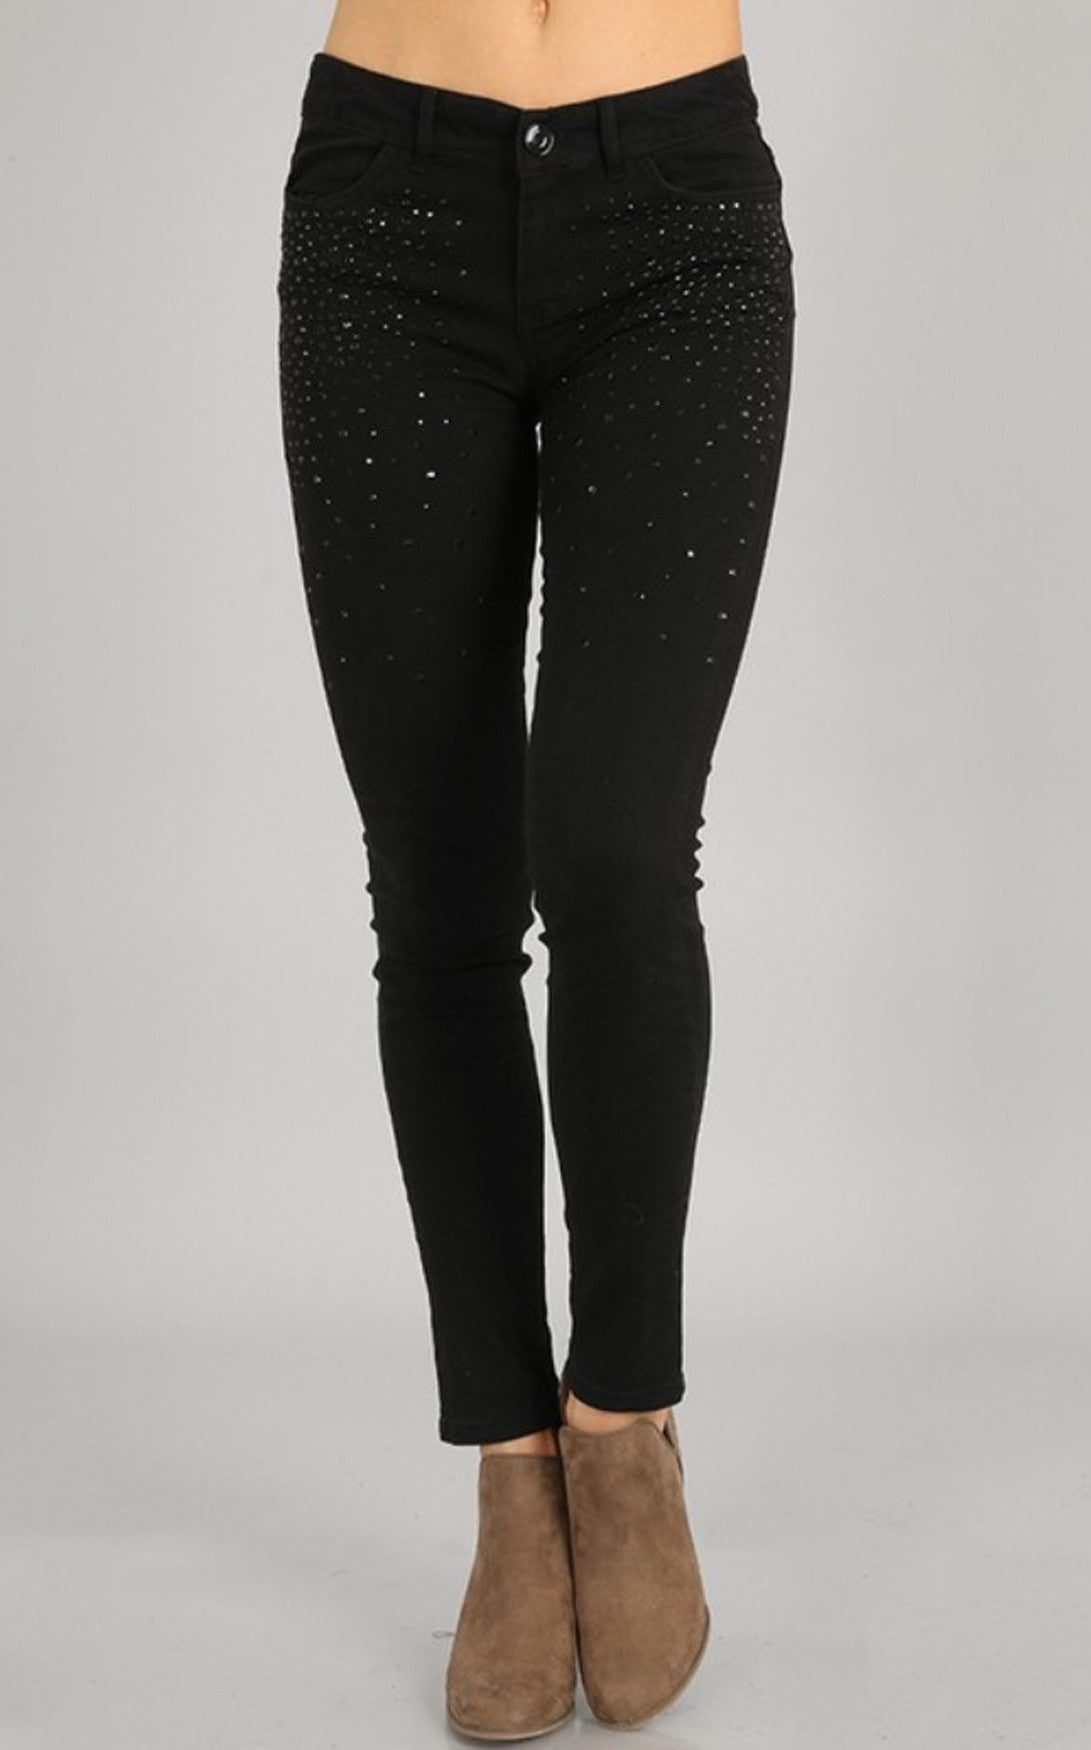 A TOUCH OF SPARKLE SKINNIES